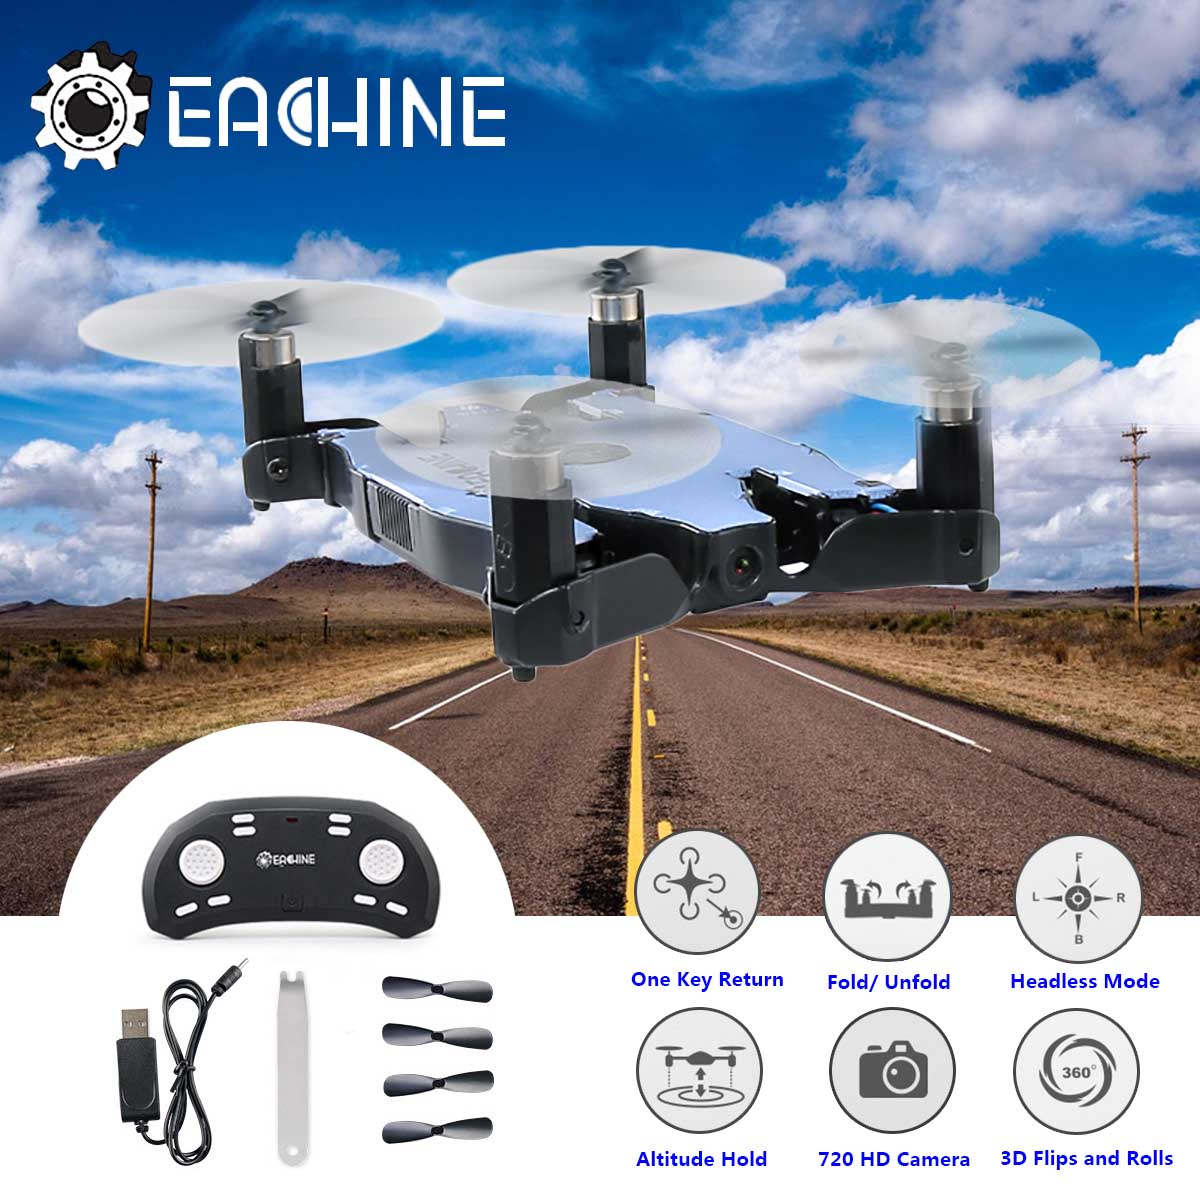 Hot Sale Eachine E57 WiFi FPV With 720P HD Camera Auto Foldable Arm Altitude Hold RC Quadcopter Selfie Drone VS JJRC H49 hot sale antenna guard protection cover for eachine qx90 qx95 fpv camera